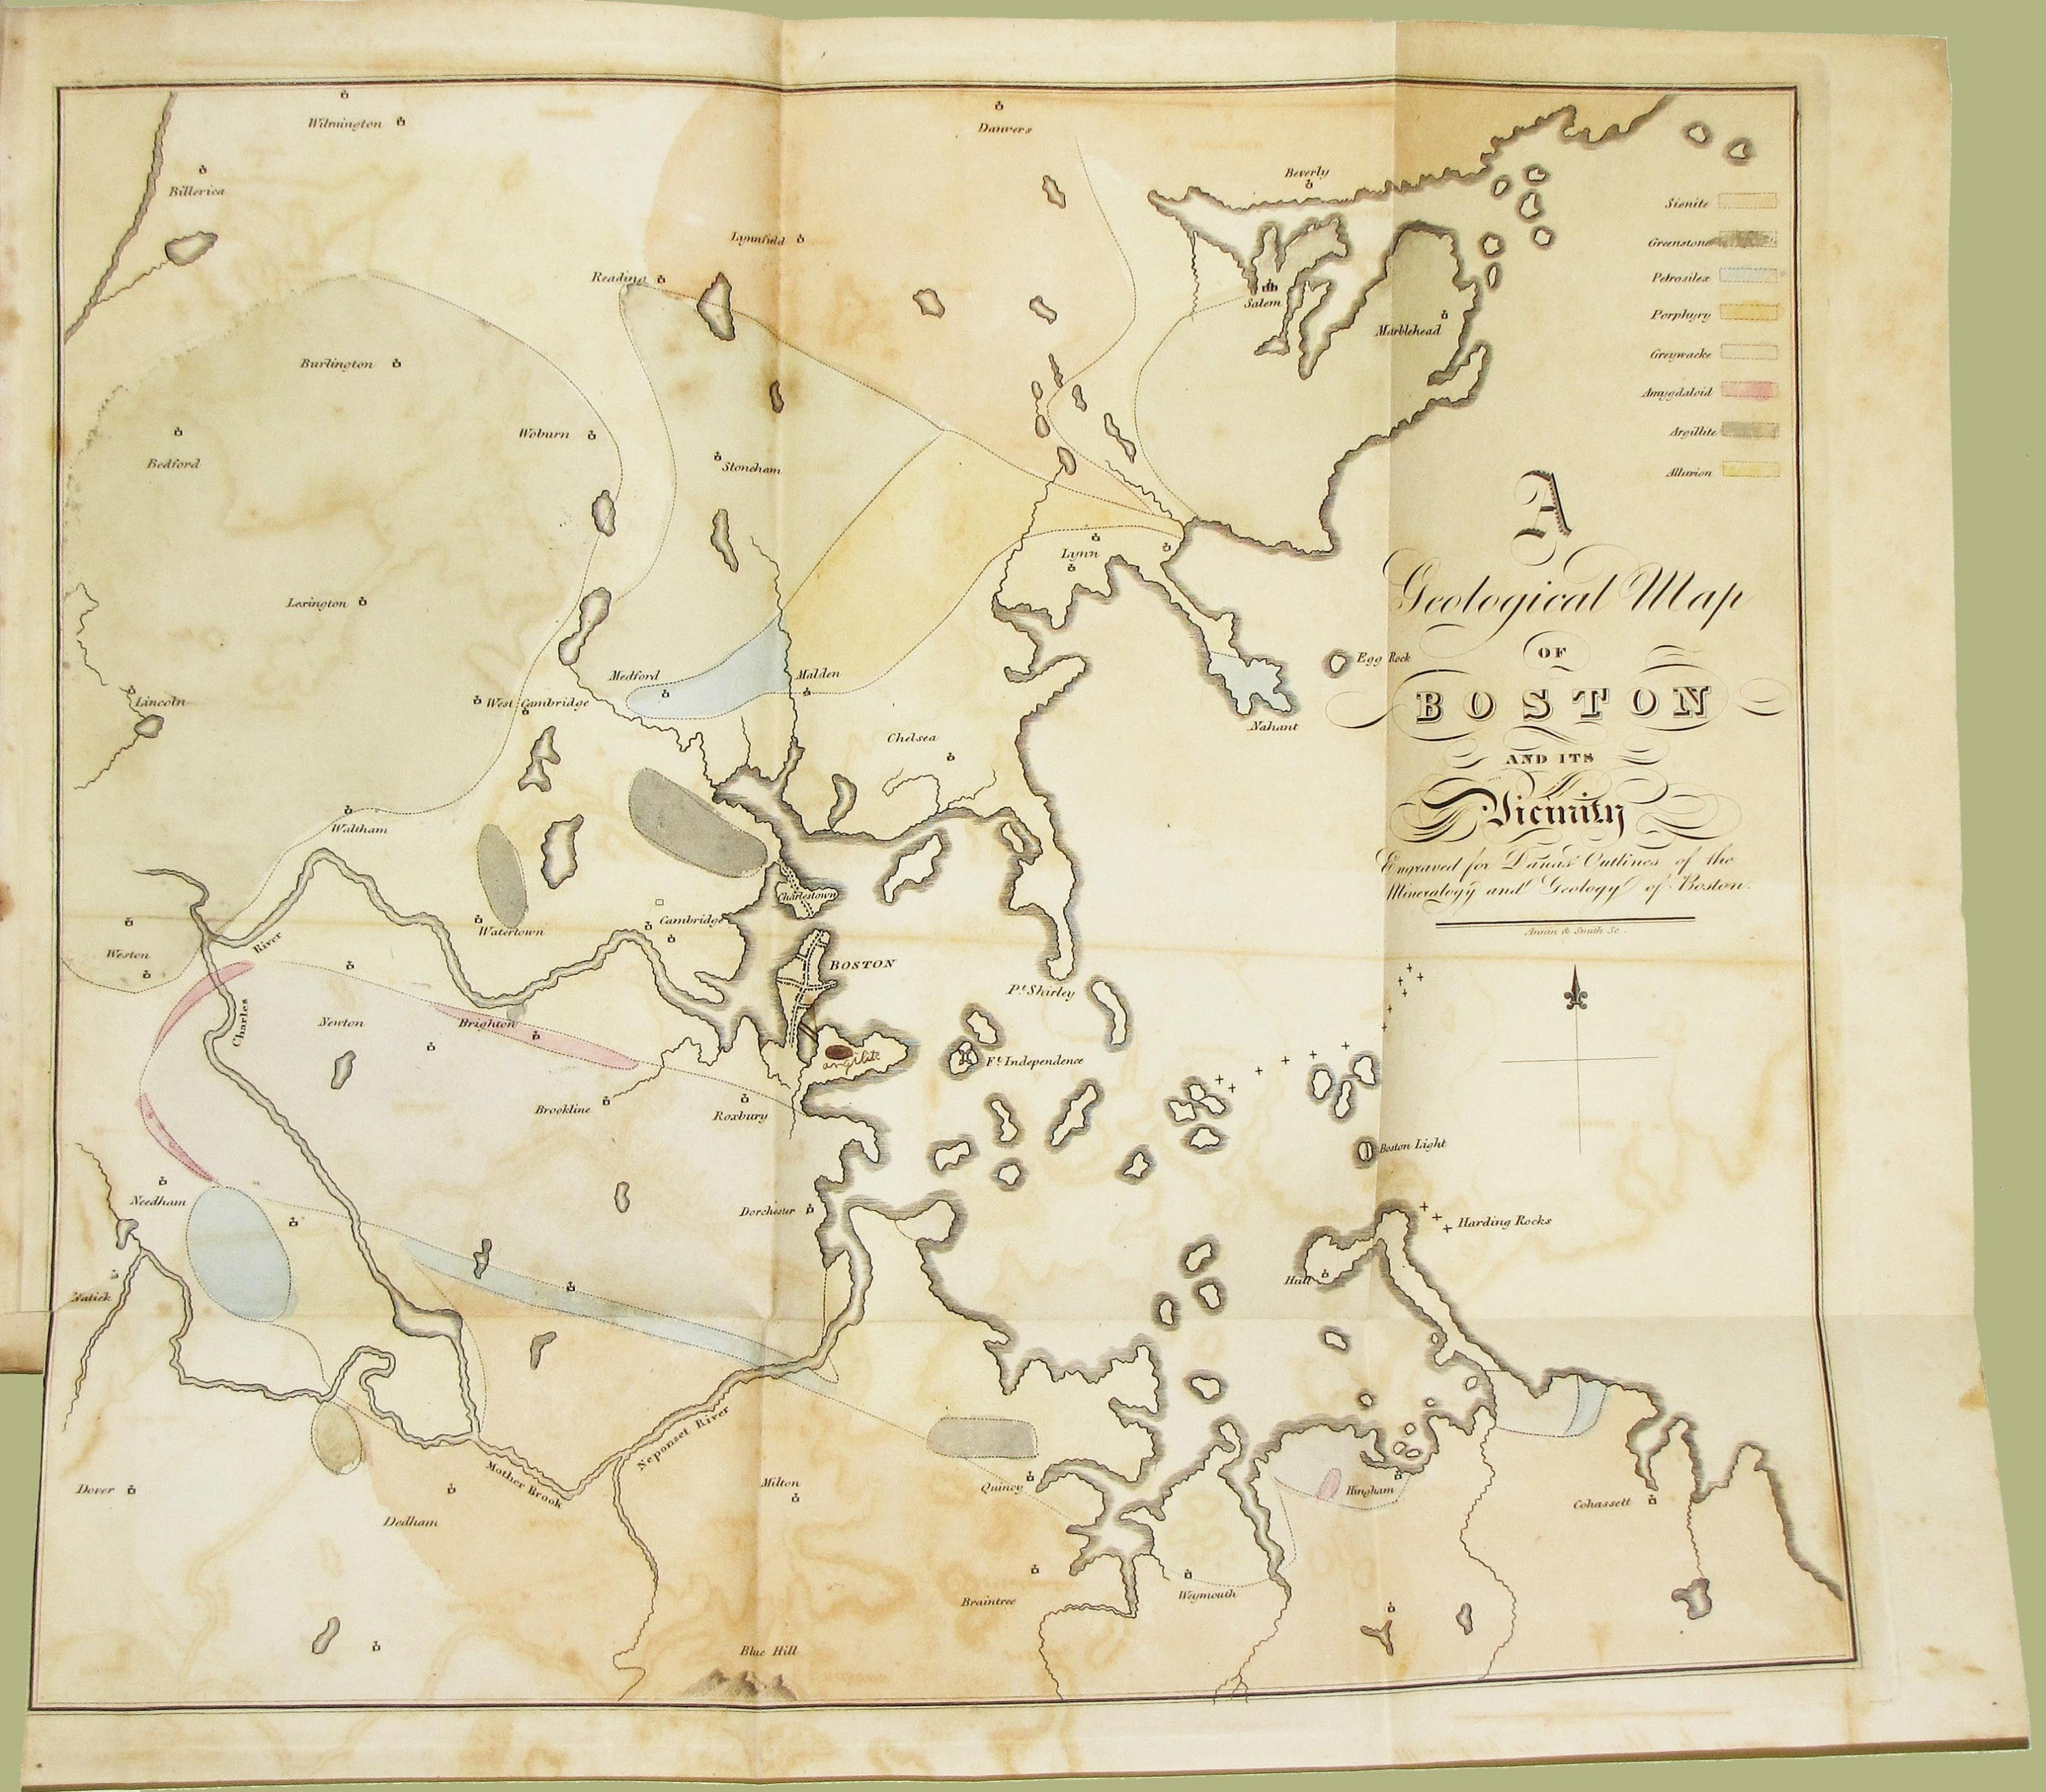 The First Geological Map Of The Boston Area Rare  Antique Maps - Map of boston vicinity